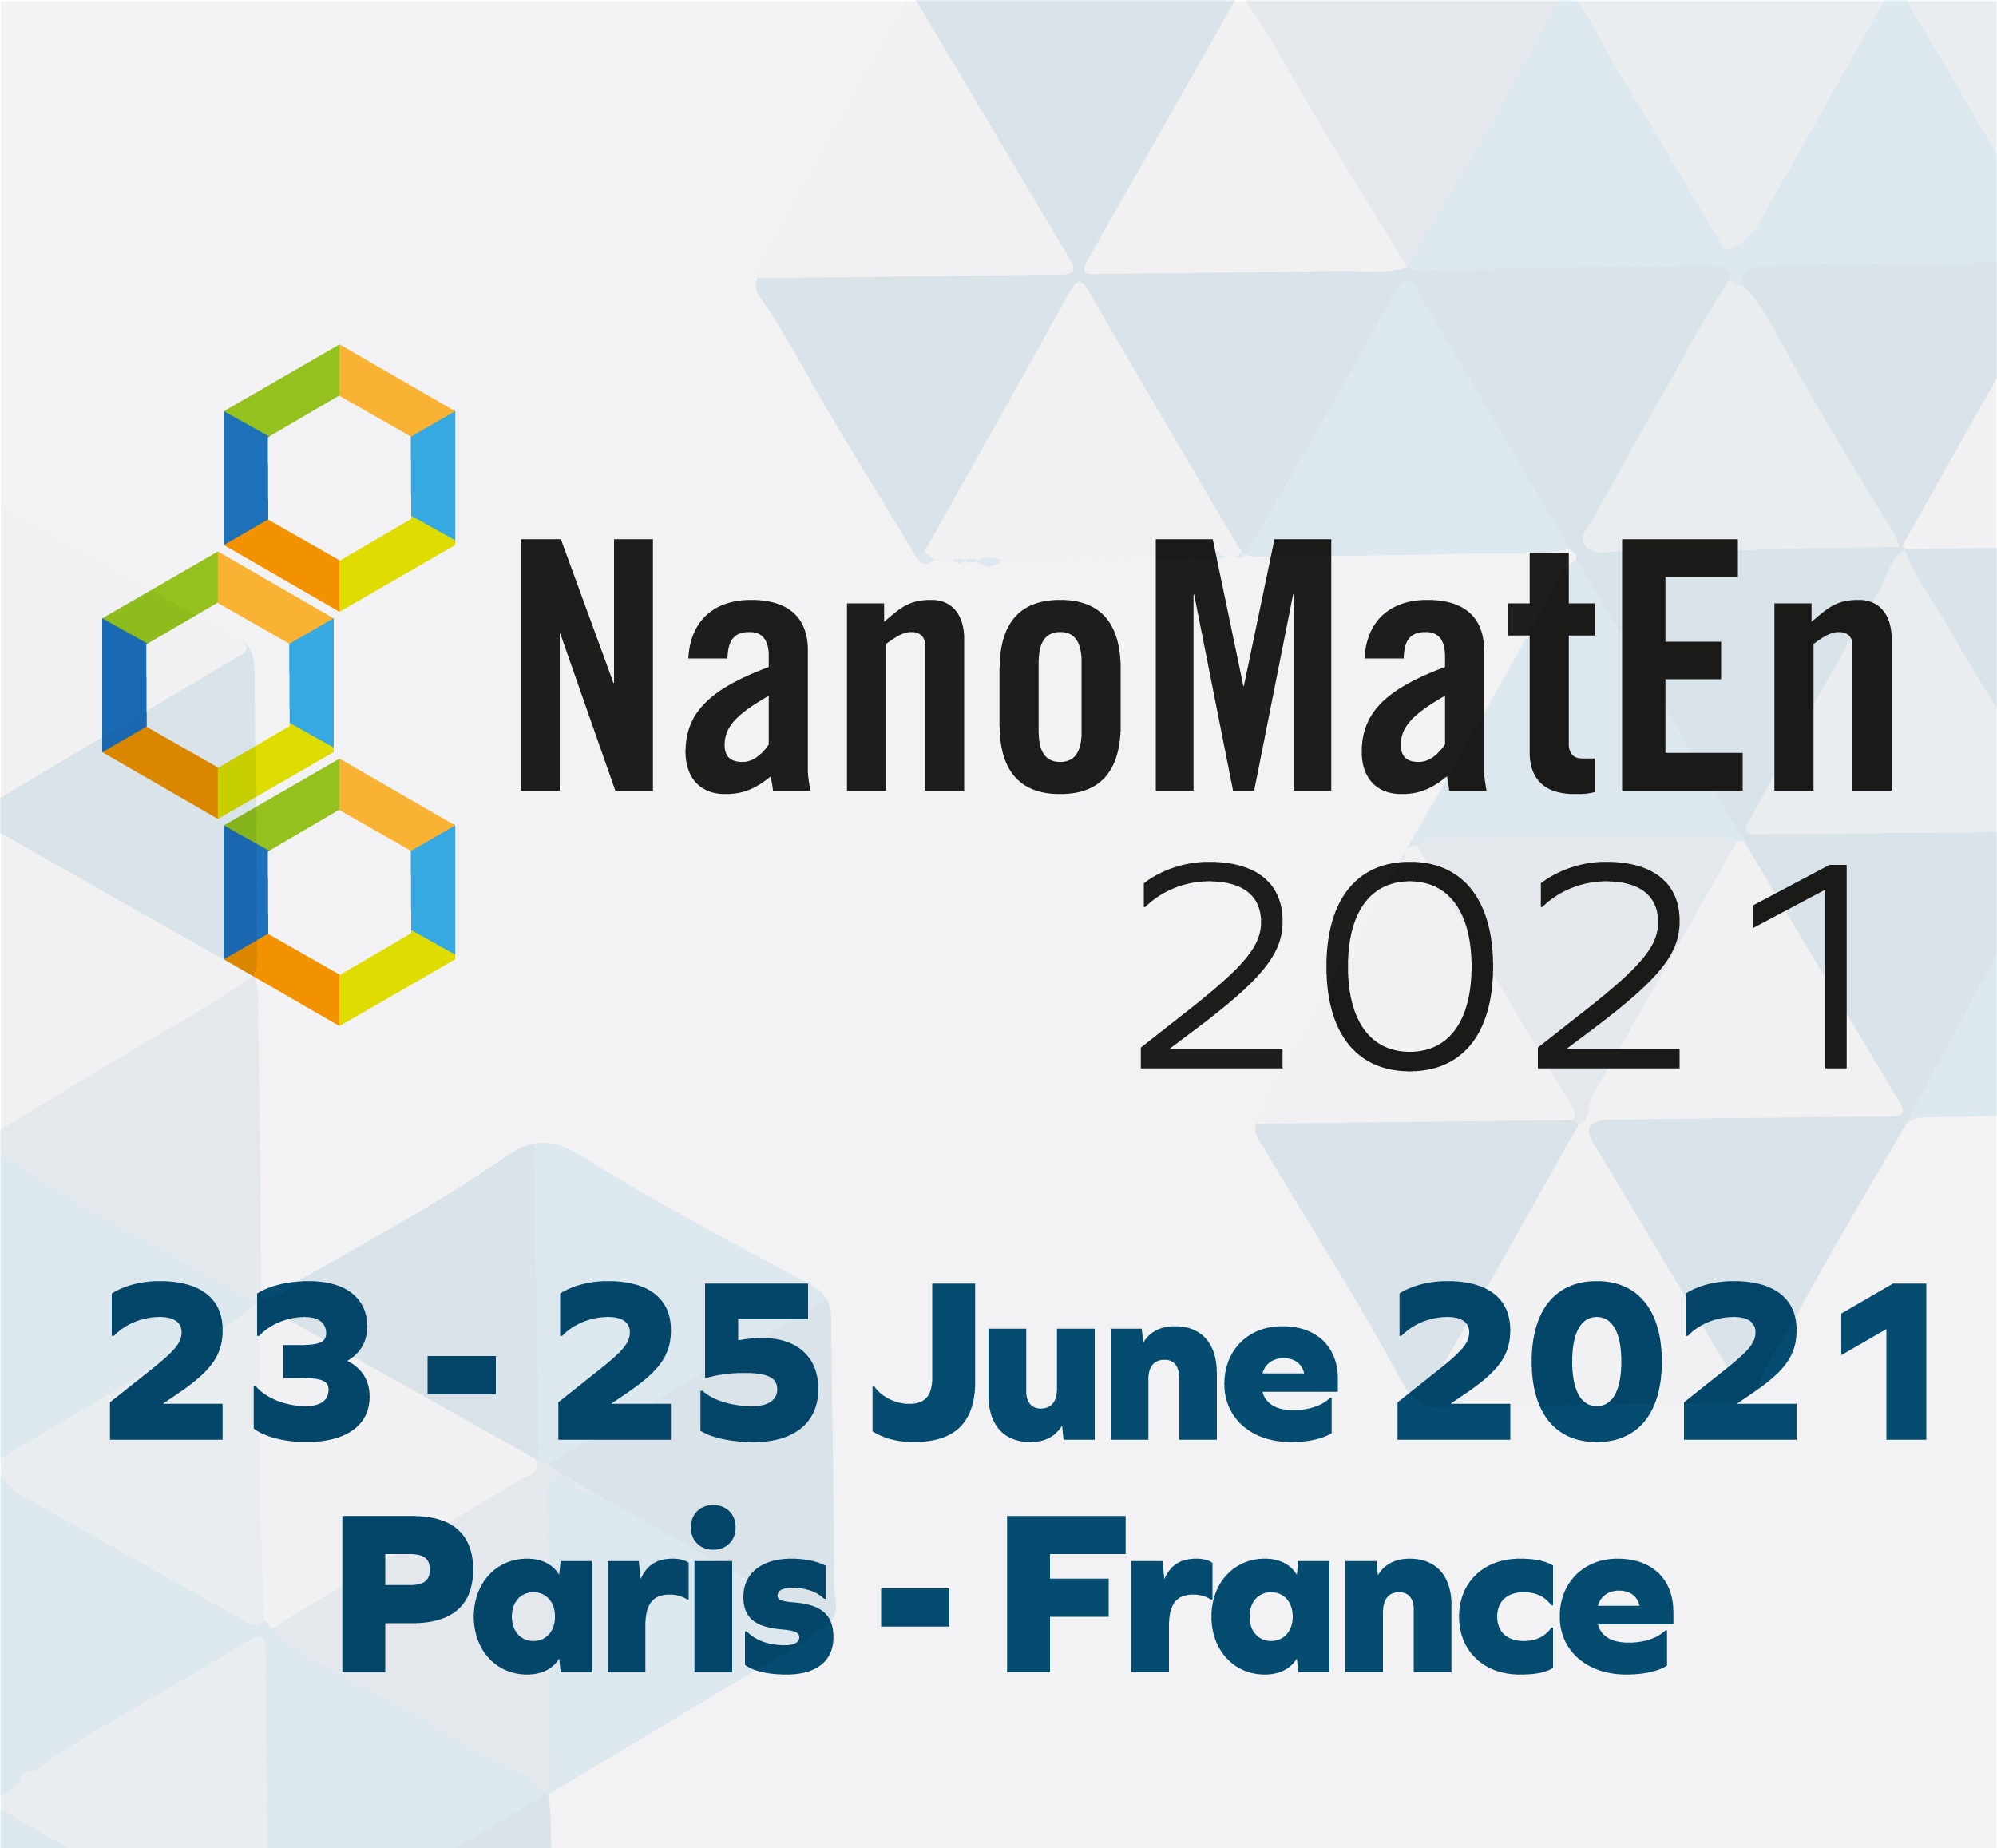 The 6th edition of the International conference and exhibition on NanoMaterials for Energy & Environment - NanoMatEn 2021